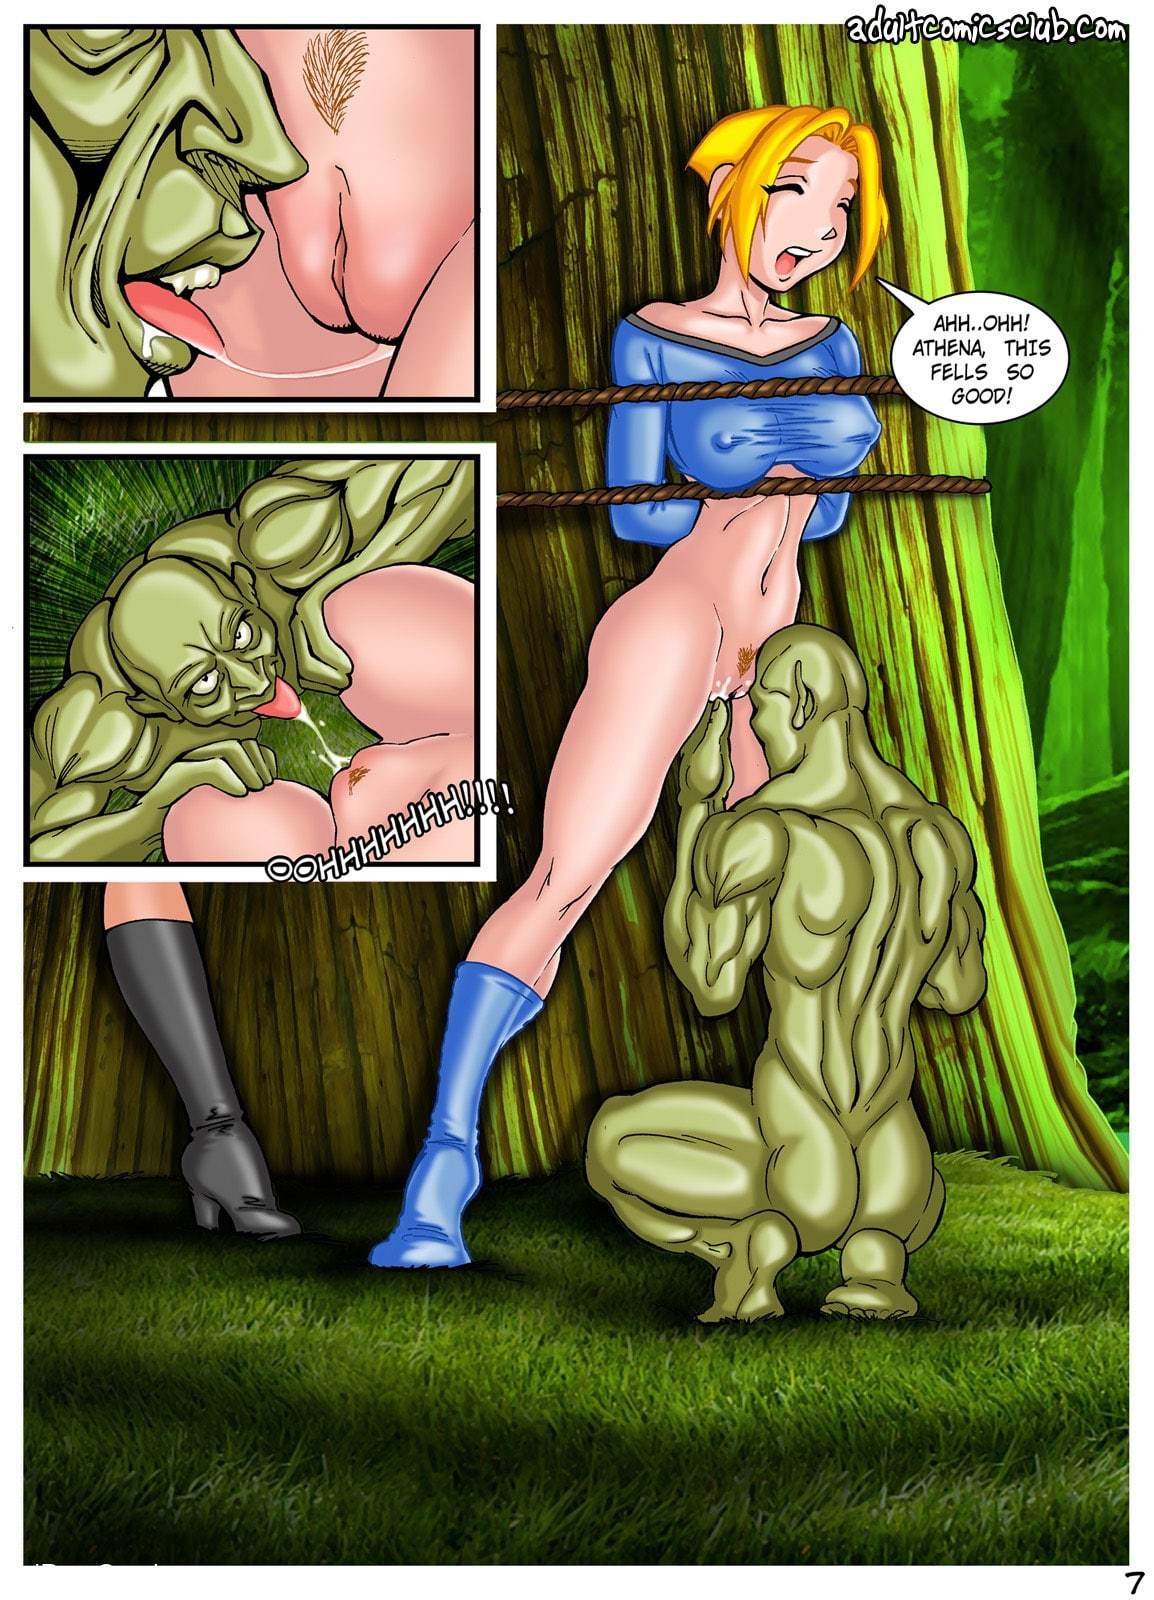 Cartoon hentai warriors photos hardcore gallery